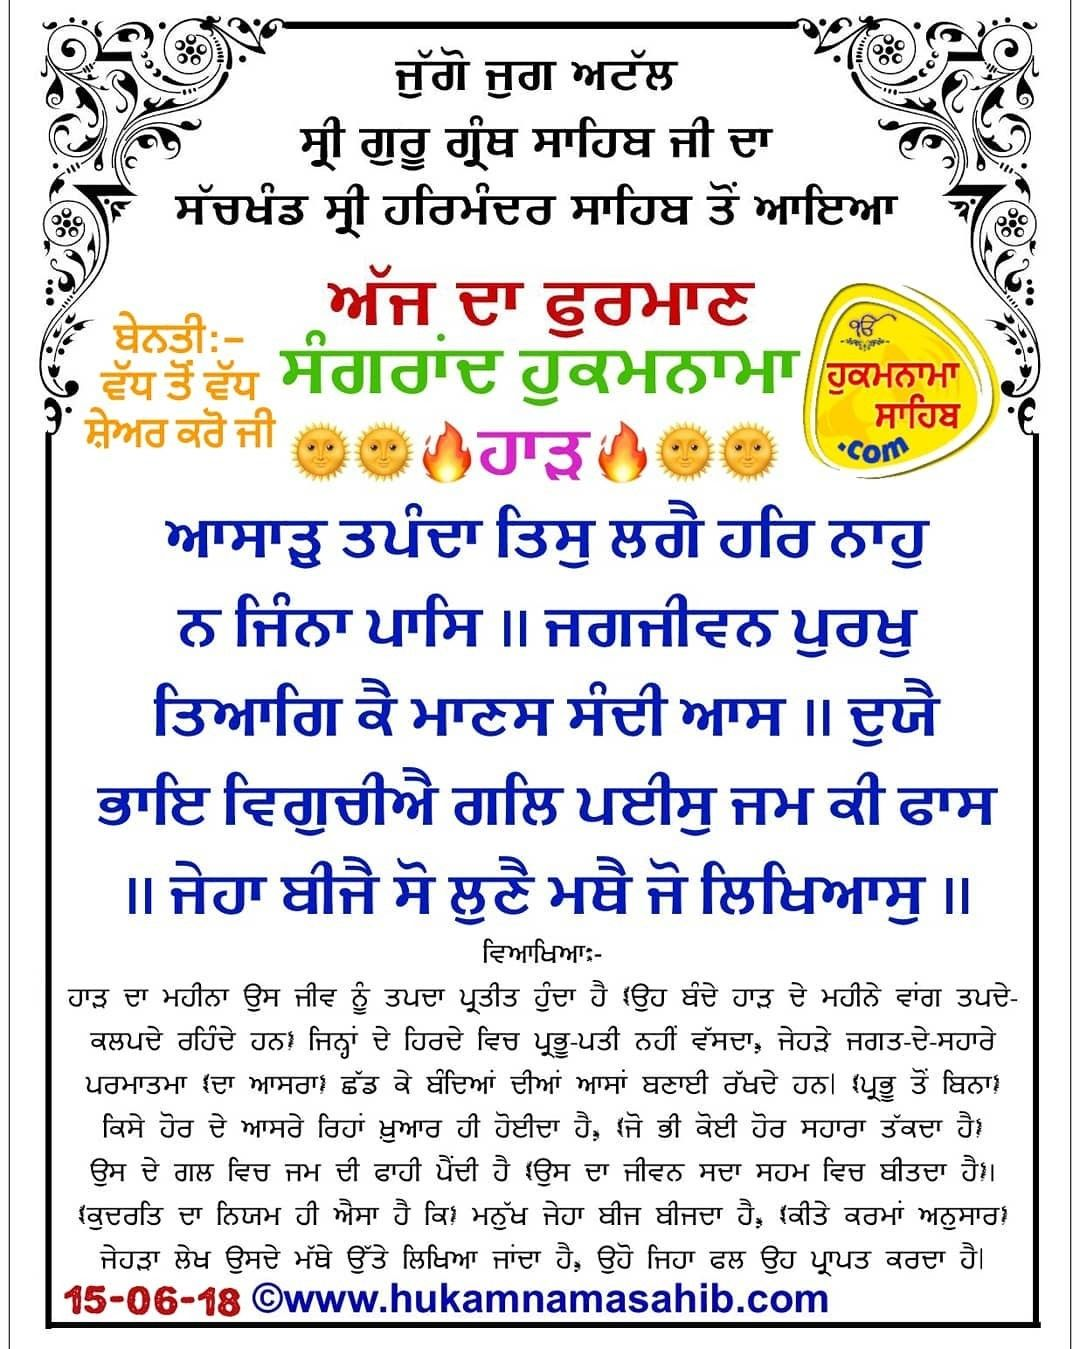 Pin By Joy Joy On Gurbani Words Word Search Puzzle Word Search